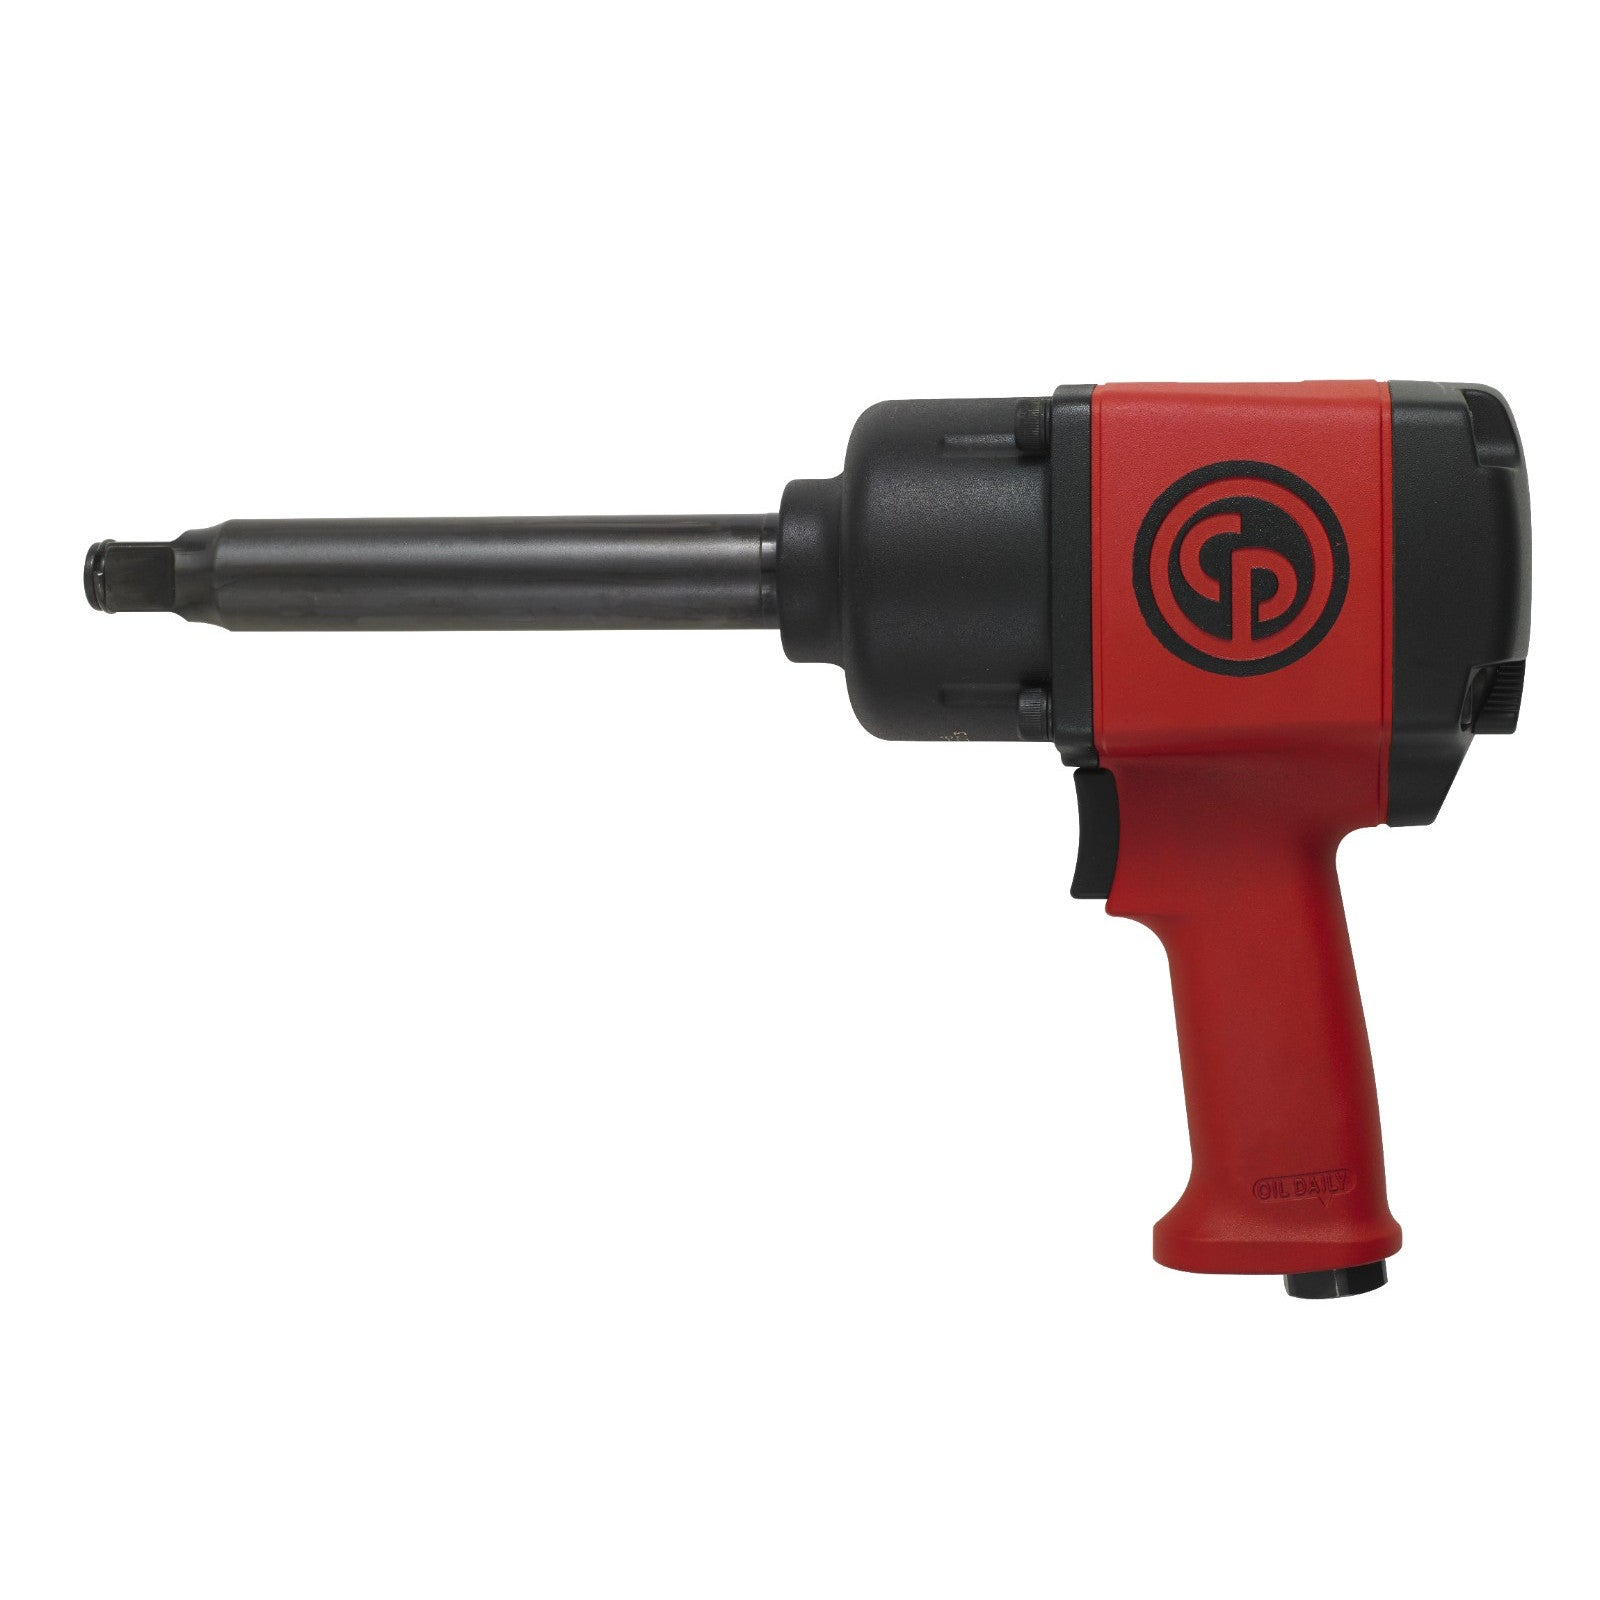 Chicago Pneumatic Impact Wrench (3/4″ Drive) (CP7763-6)